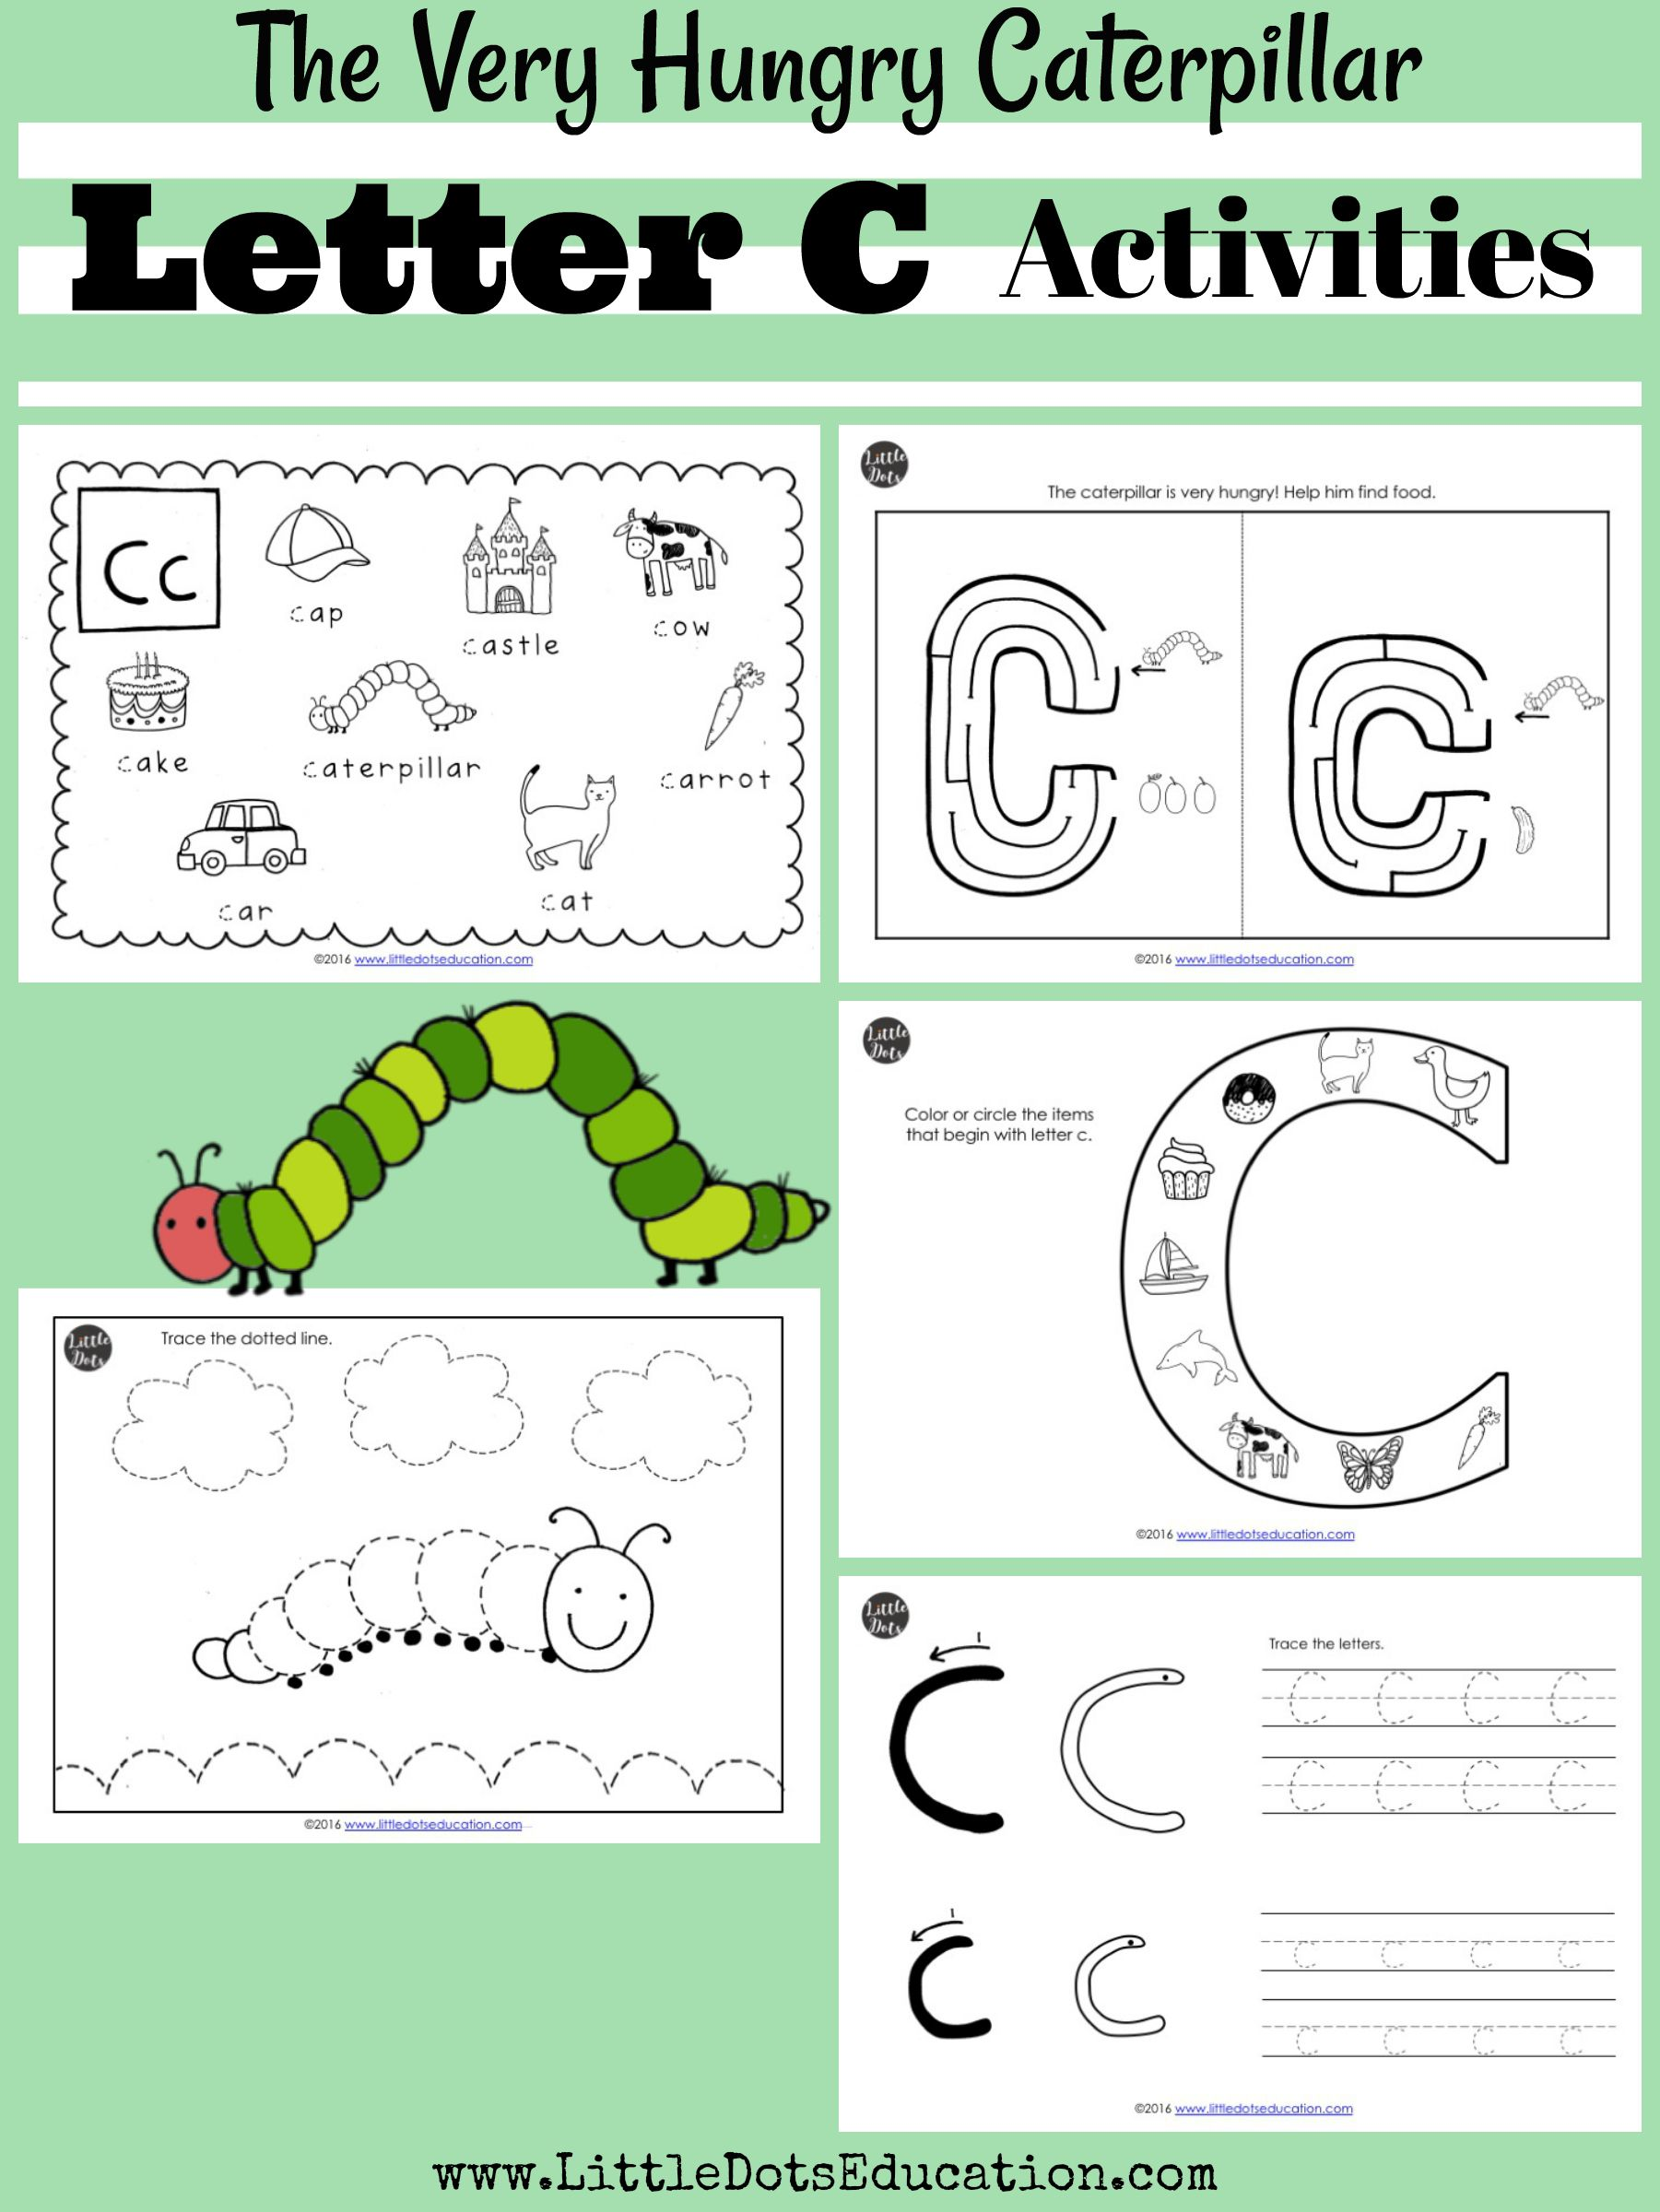 Download letter c activities and worksheets for preschool, pre-k or ...